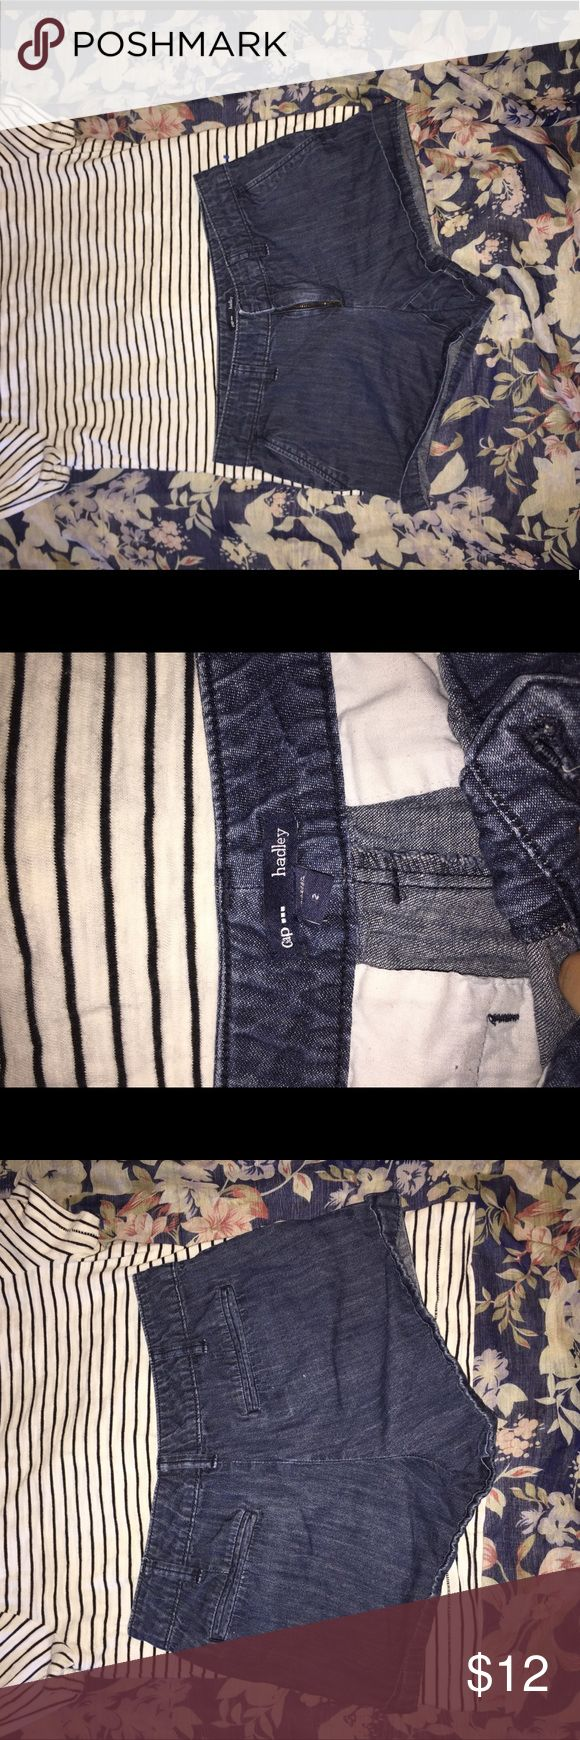 Size 2 gap Jean shorts Very cute and in great condition. No flaws. Bundle to save. GAP Shorts Jean Shorts